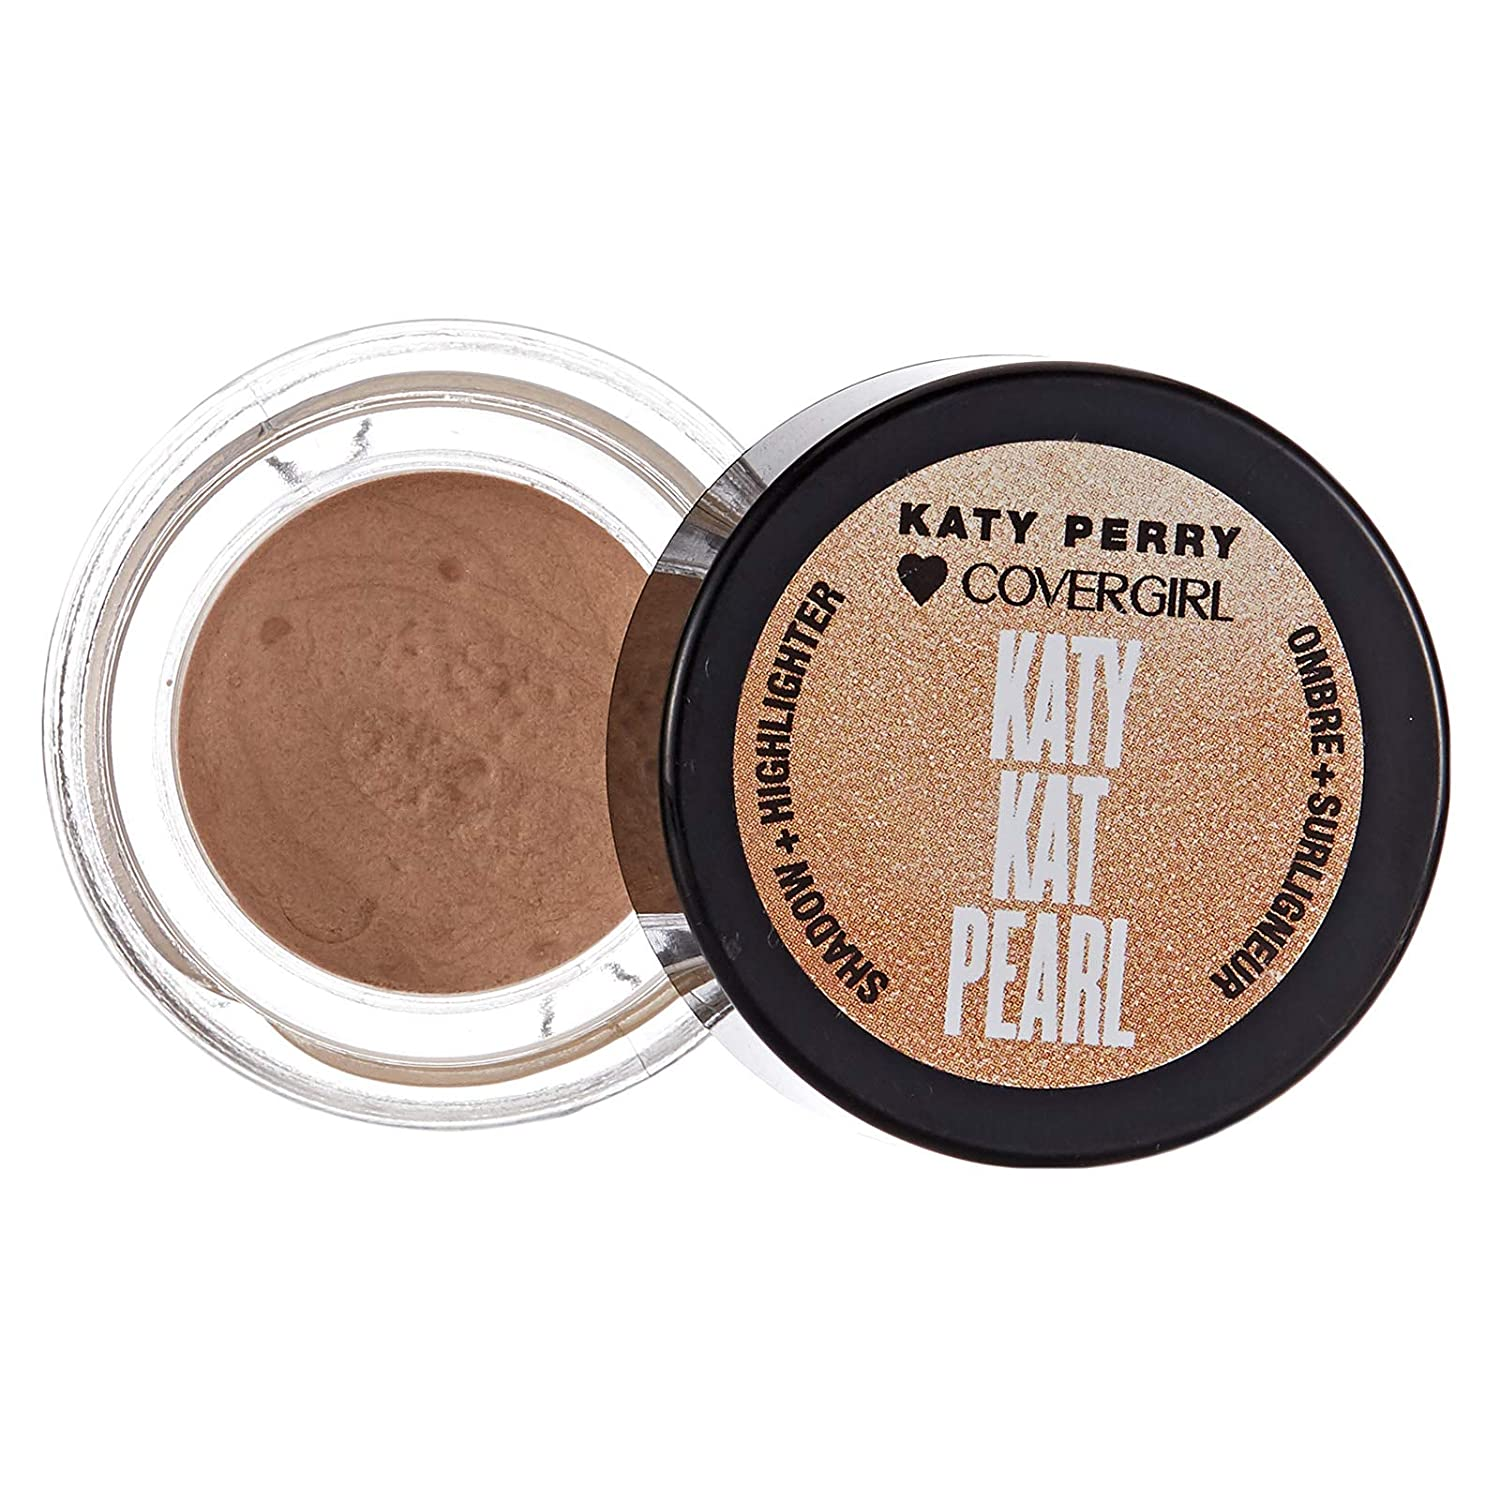 Katy Kat Pearl Shadow Highlighter – KP01 Tiger's Eye by CoverGirl for Women – 0.24 oz Eye Shadow